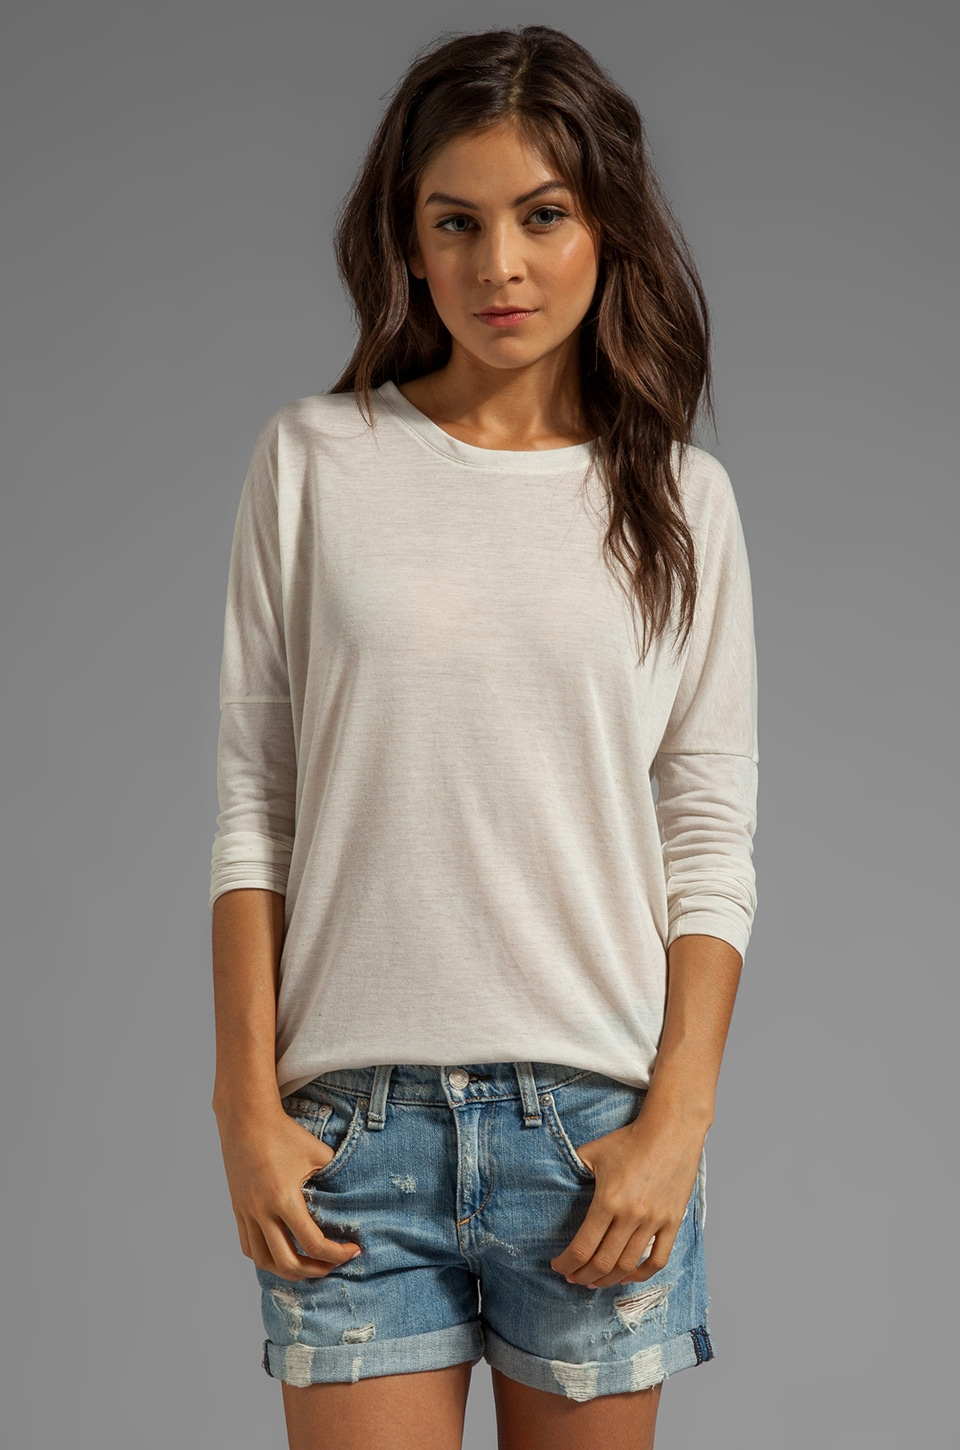 Daftbird Scoop Neck Fitted Long Sleeve Tee in Flax